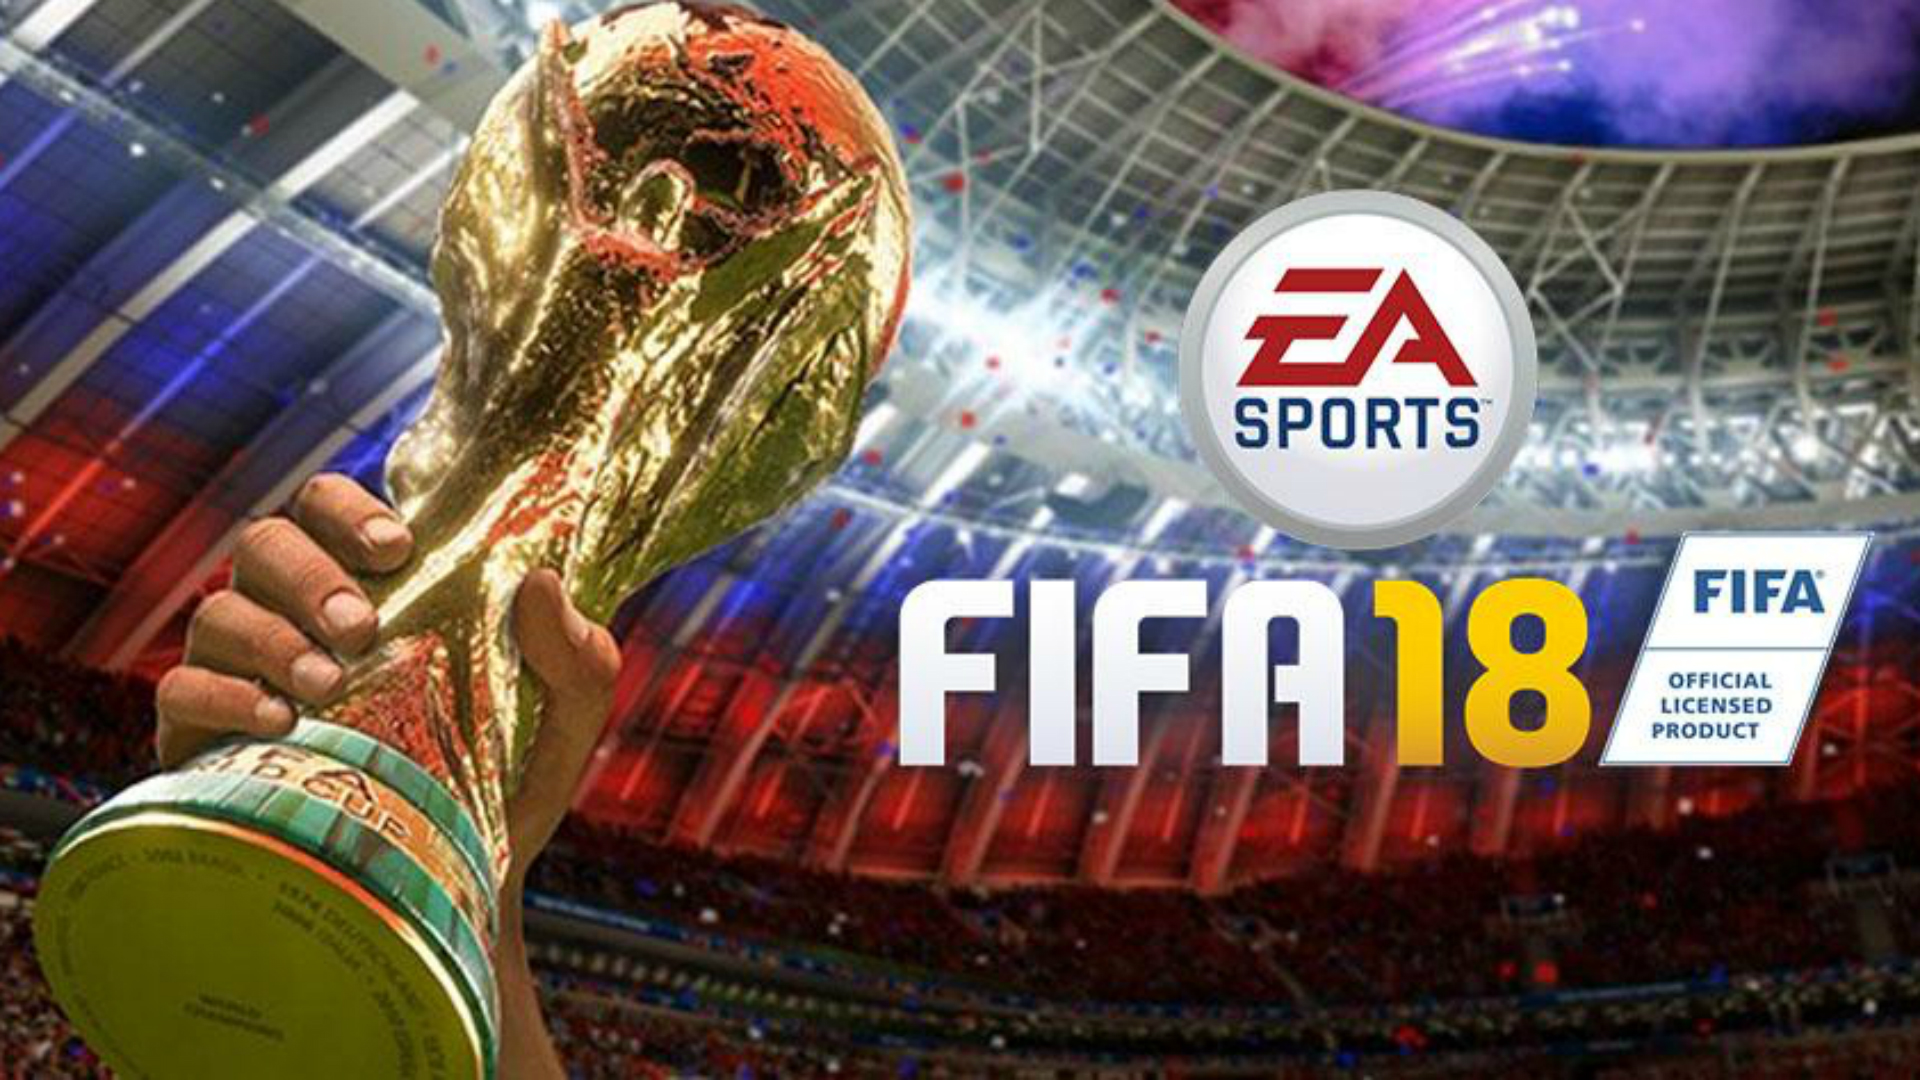 Federation Internationale de Football Association  18 World Cup free update is now available for download